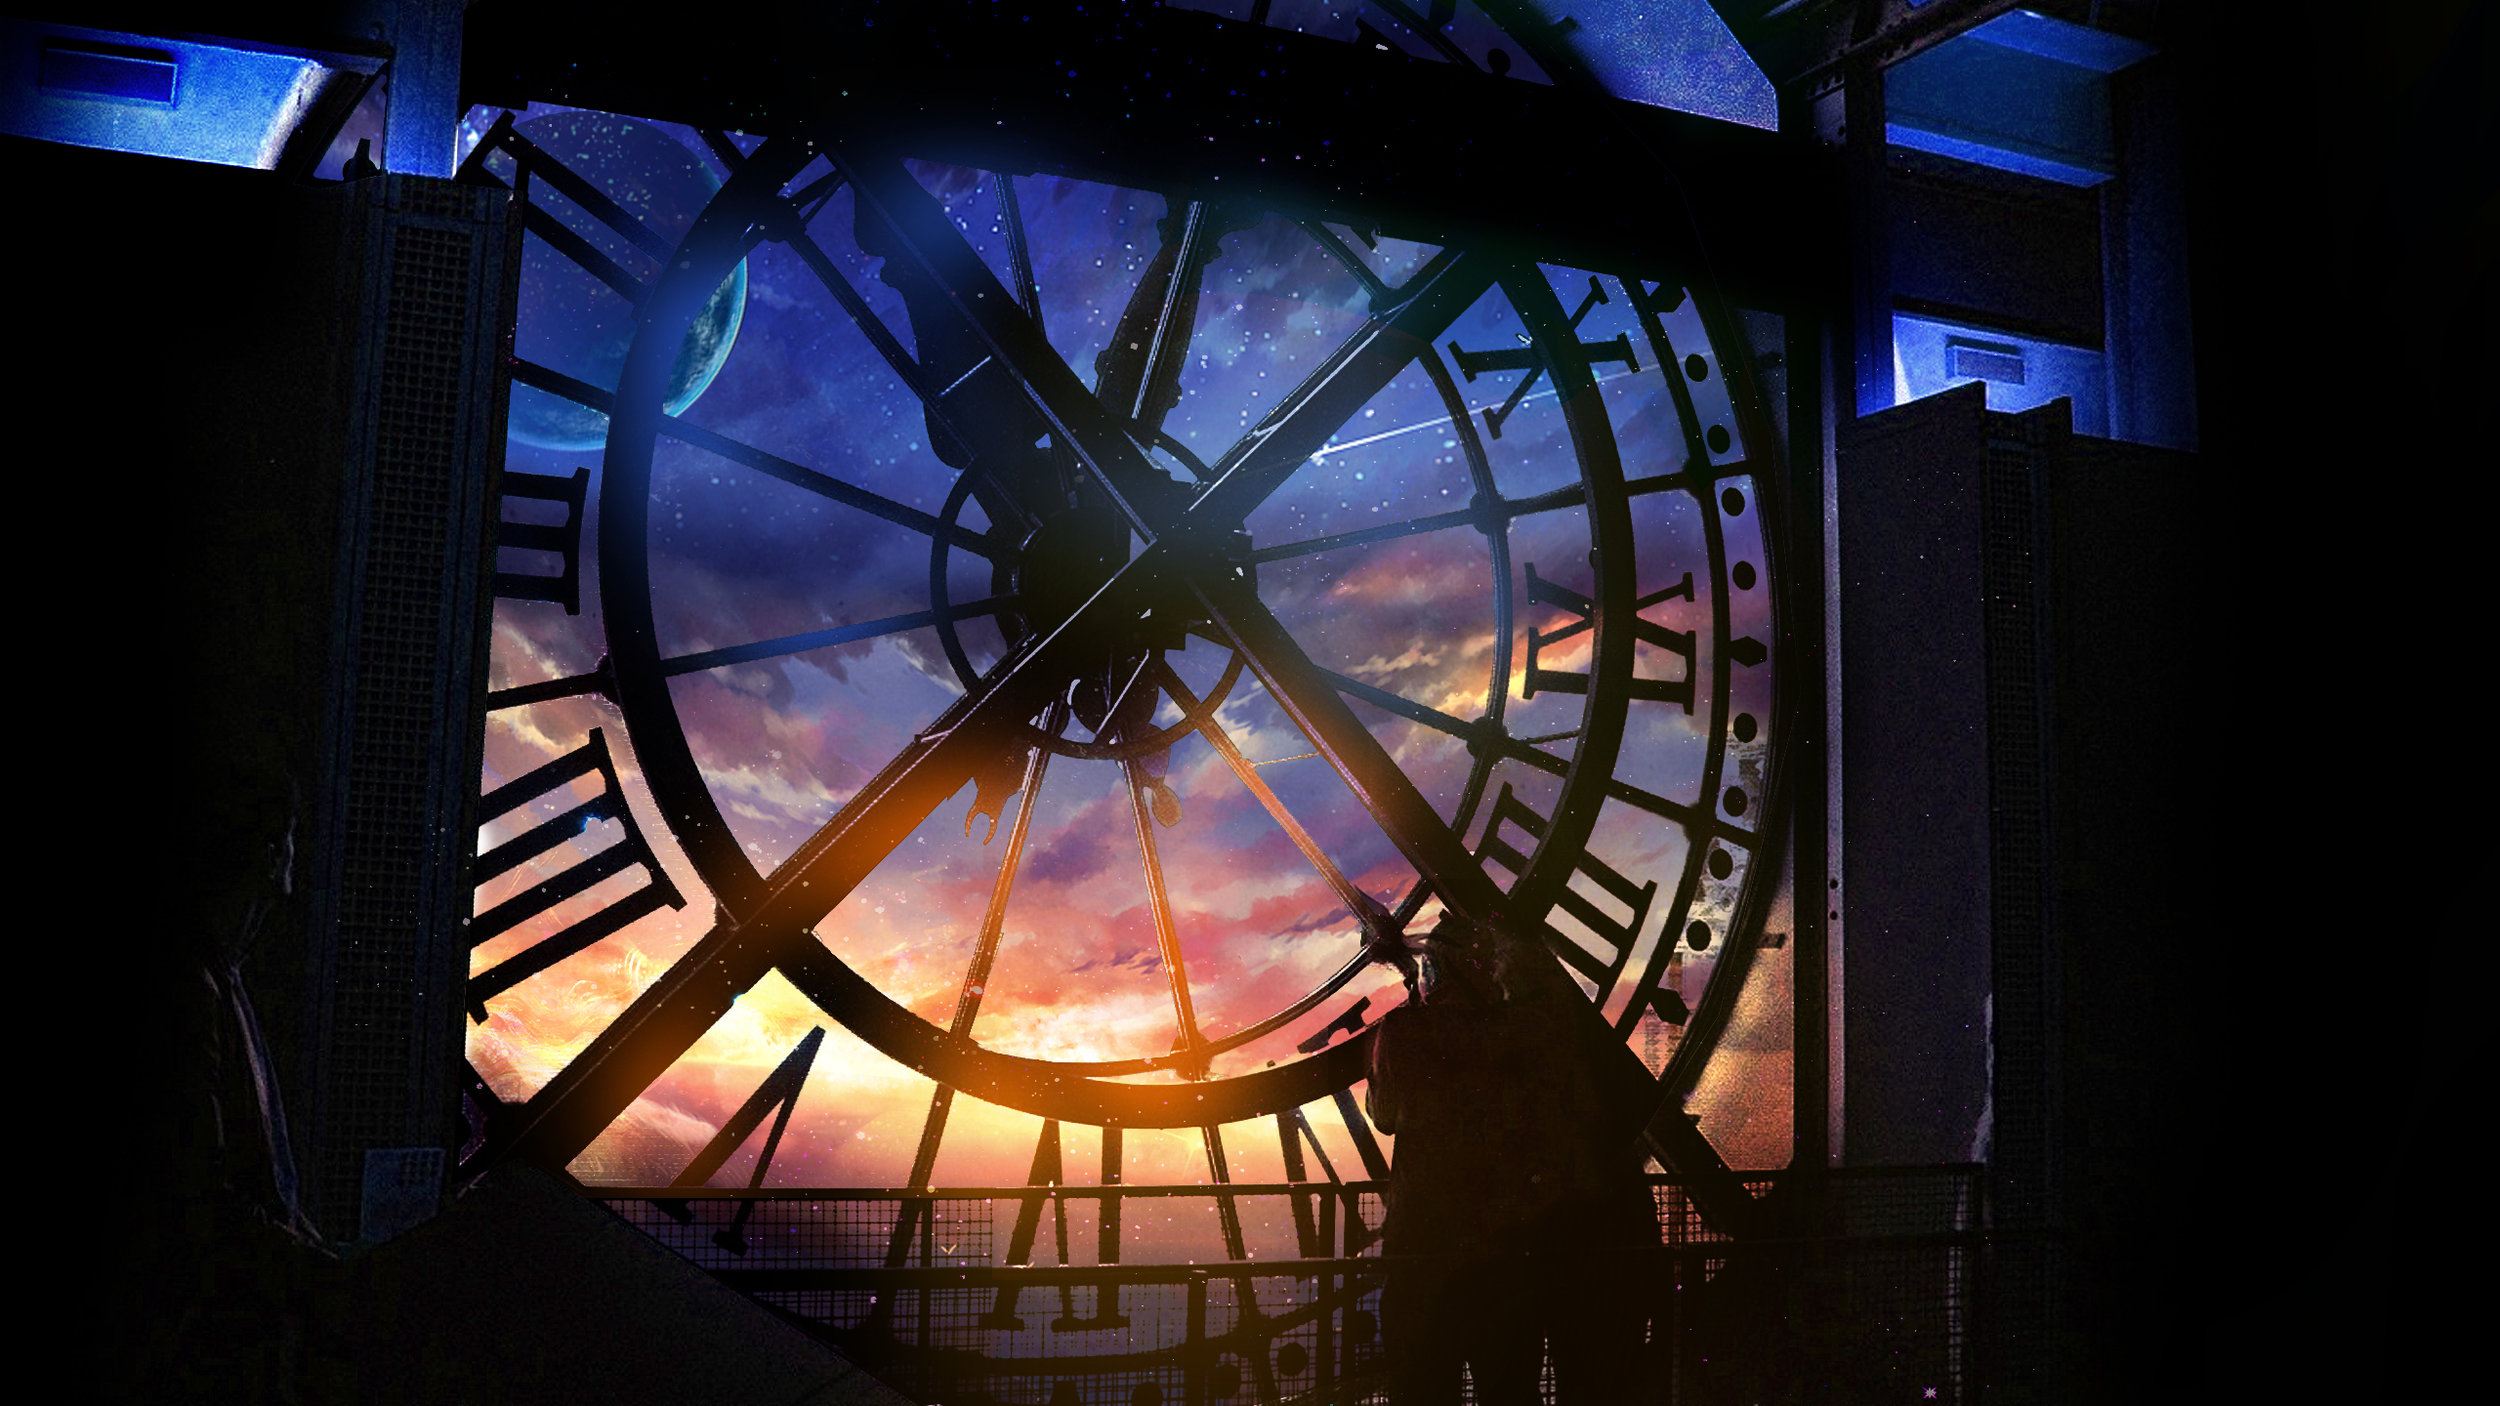 time-2560x1440-clock-hd-8479.jpg